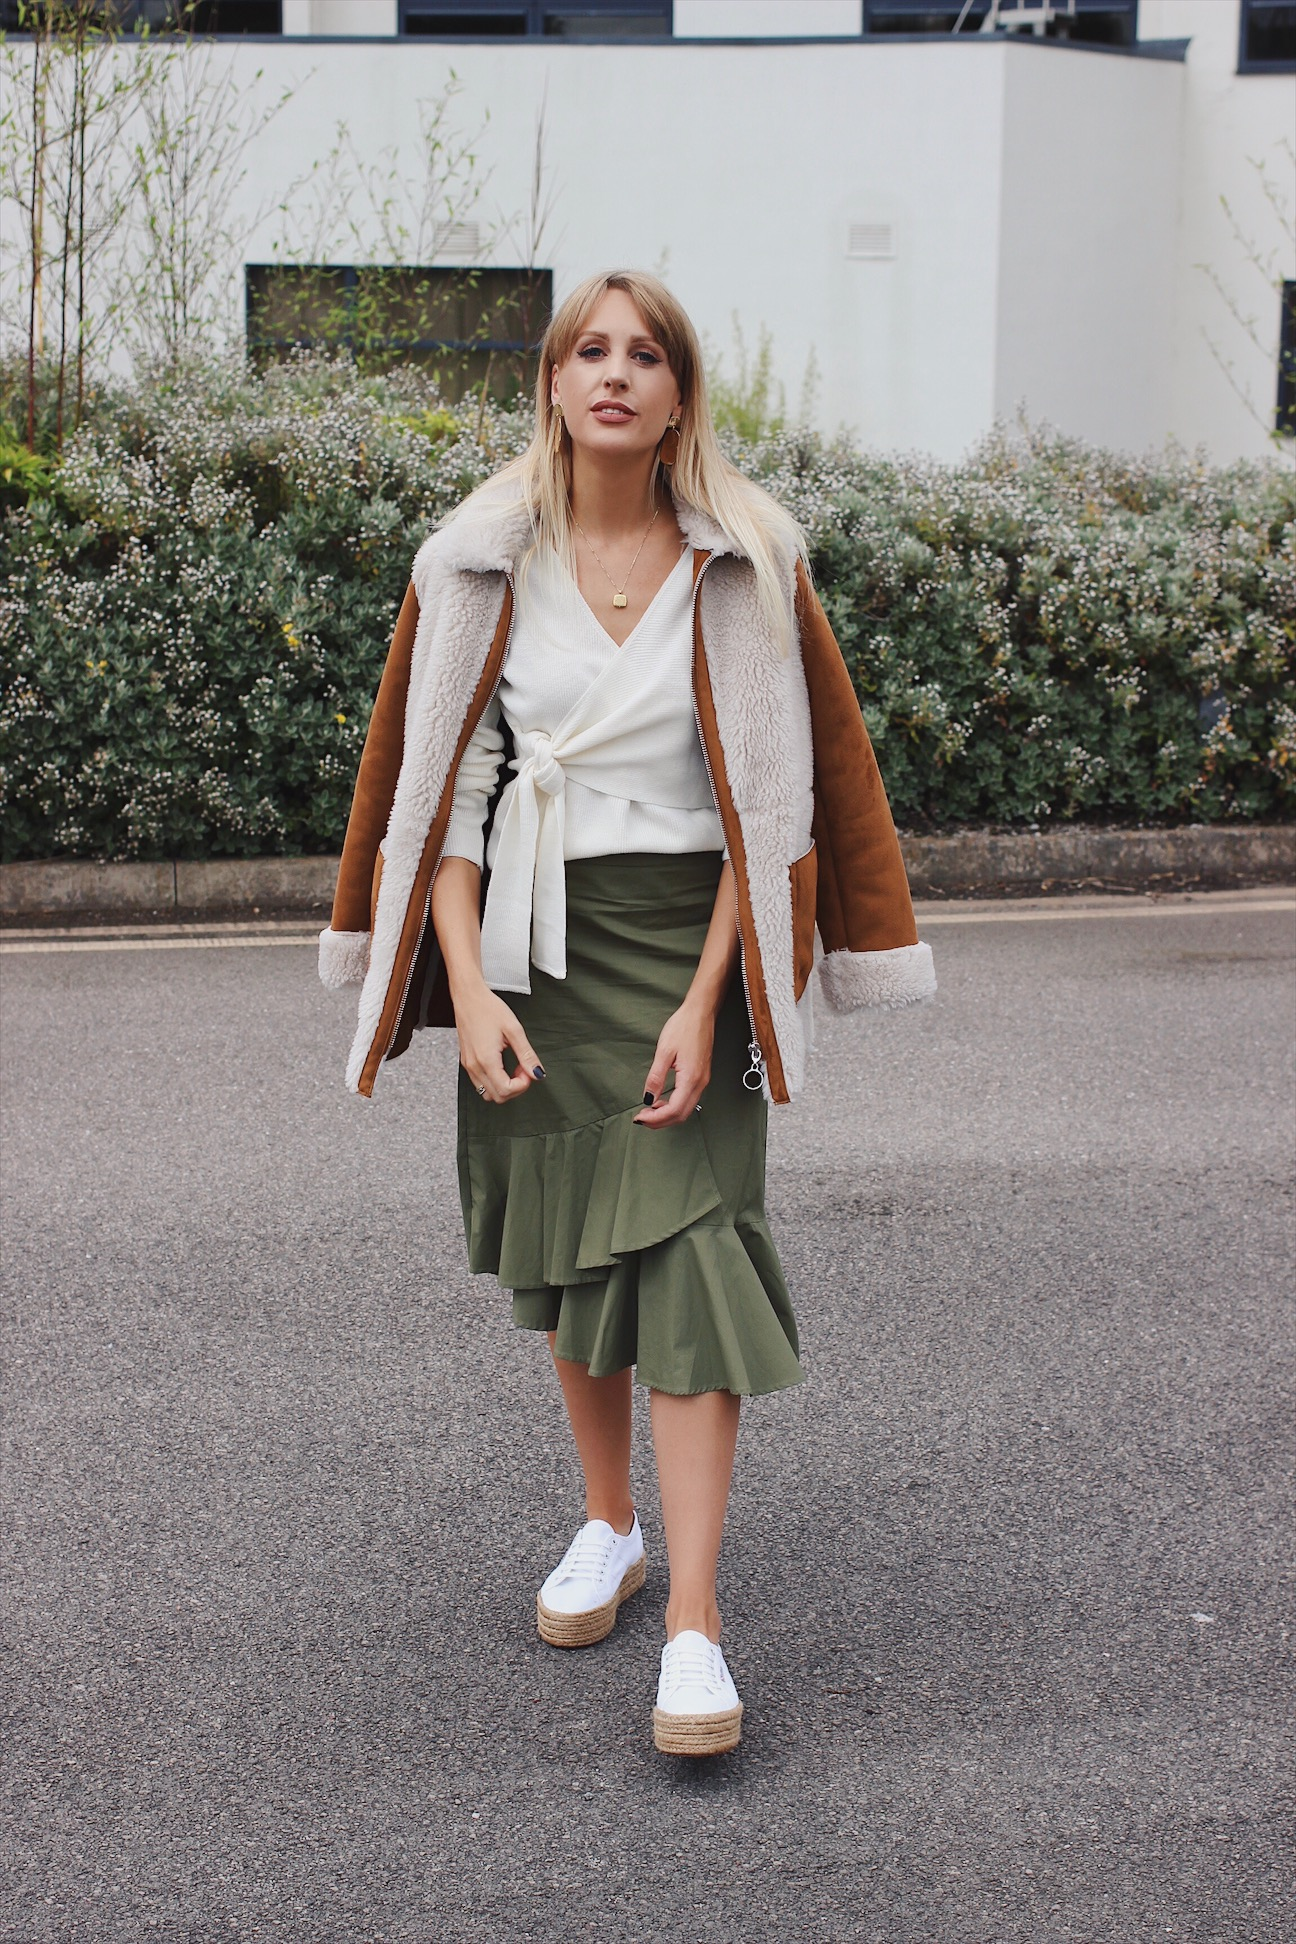 high street fashion blogger charlotte buttrick wearing asos and warehouse